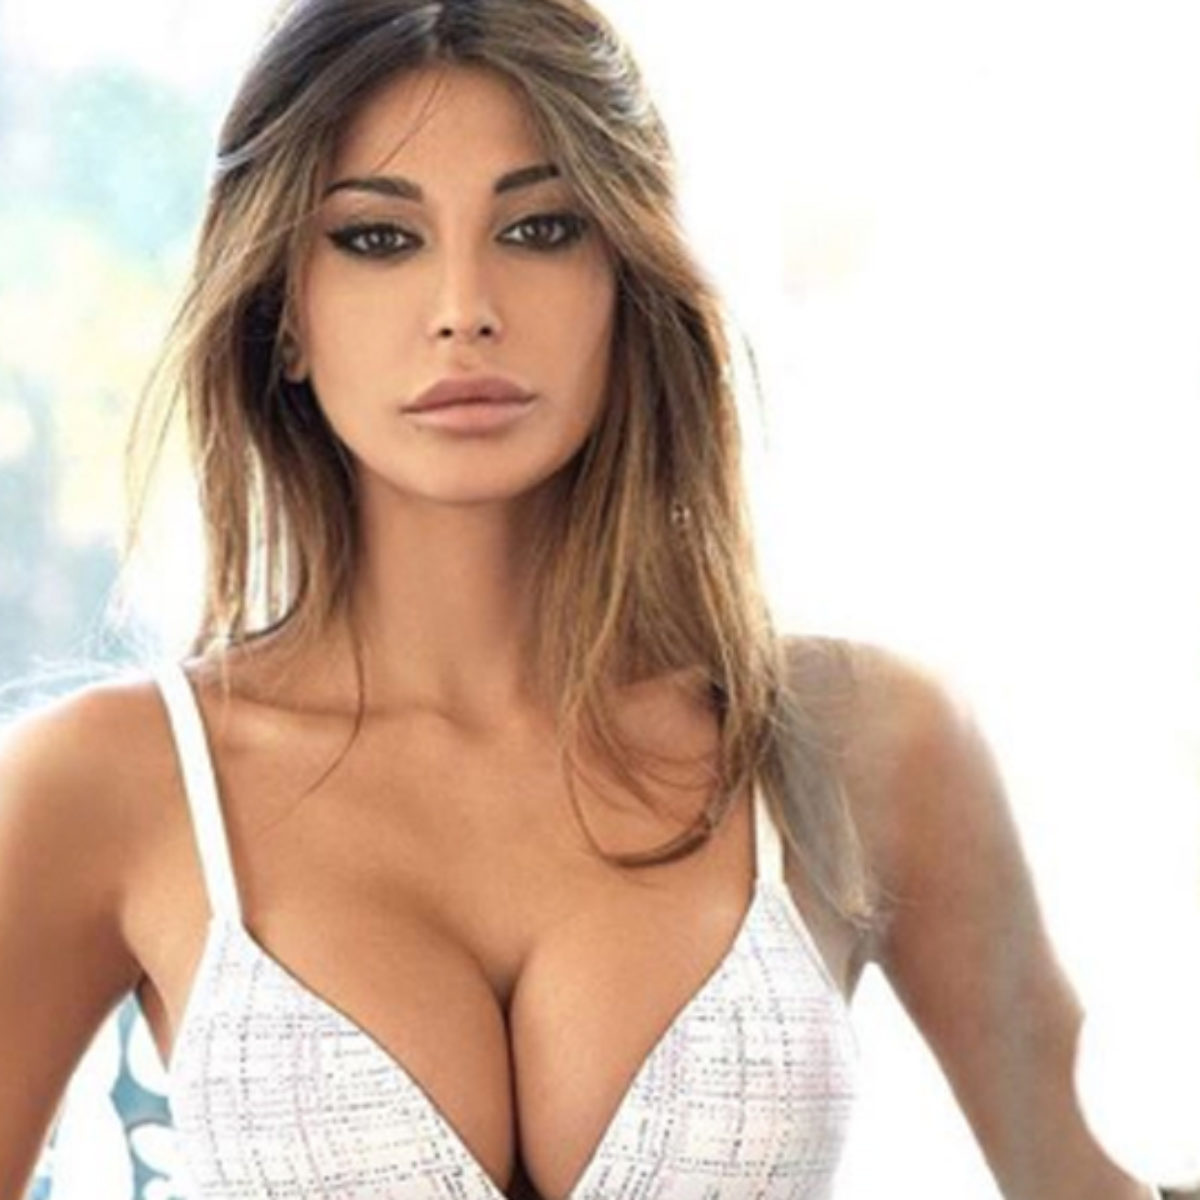 Christina Buccino Hot White Bra Modeling - Christina Buccino Net Worth, Pics, Wallpapers, Career and Biography